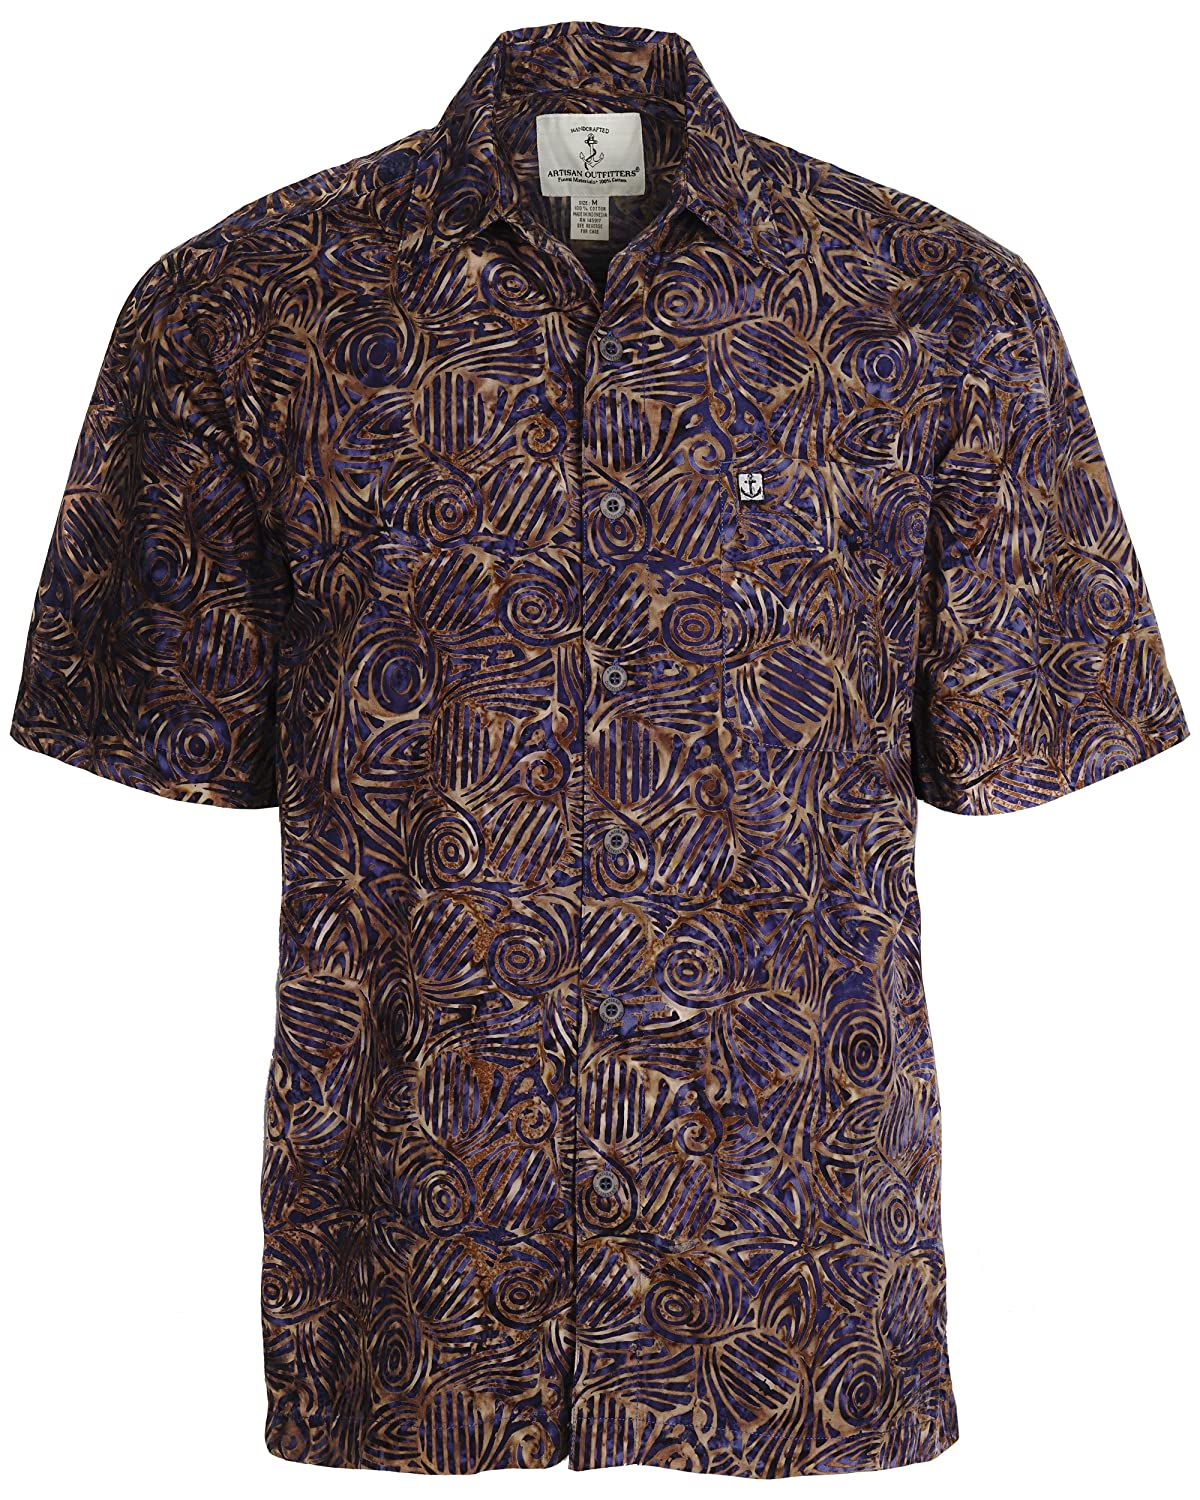 Artisan Outfitters Mens Serenity Batik Cotton Shirt A0214-41